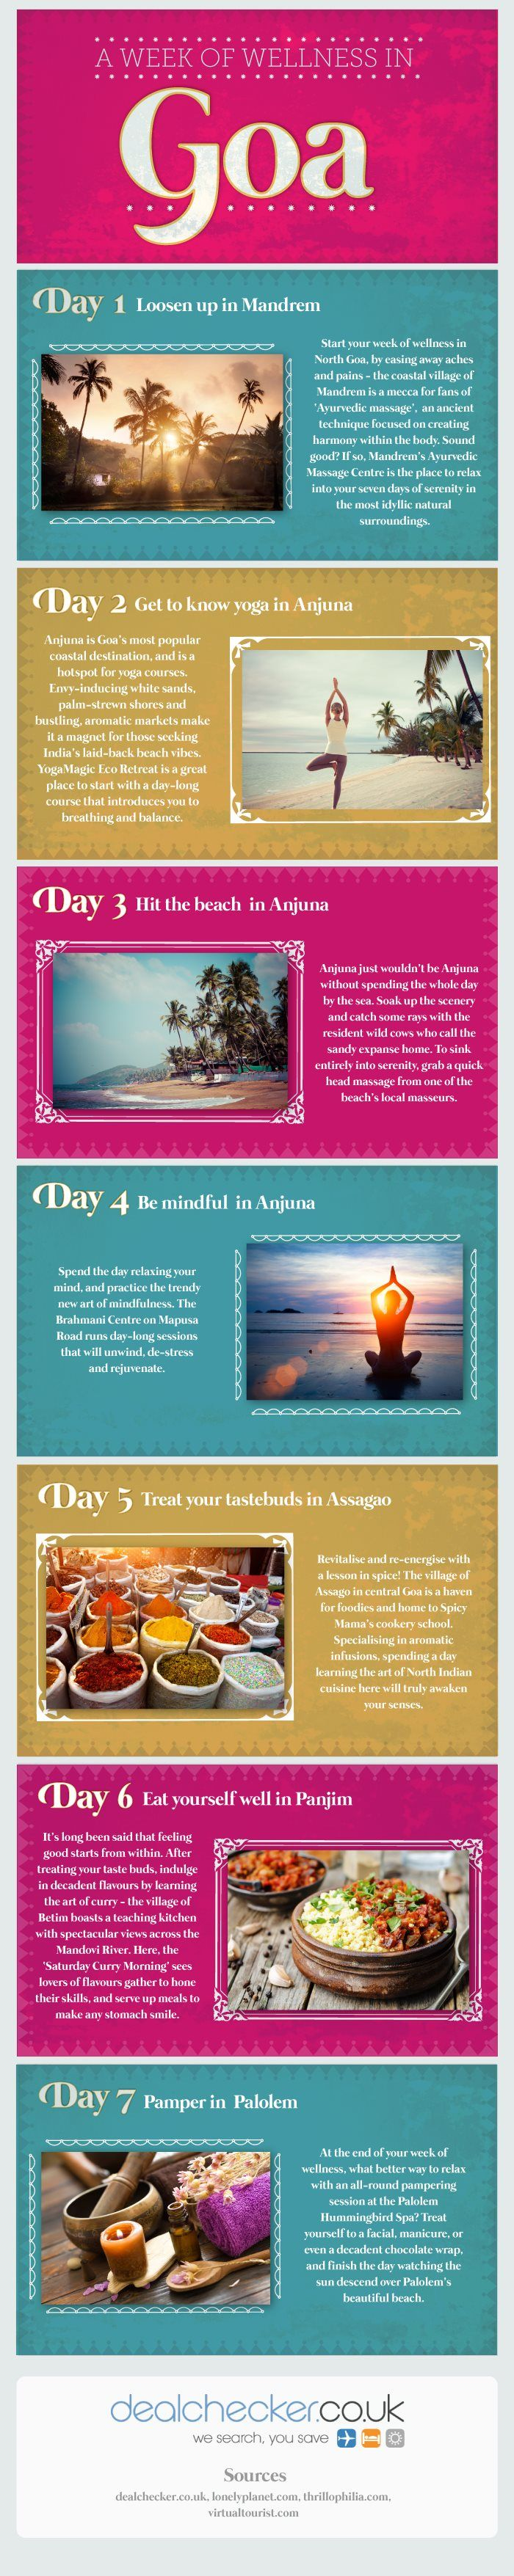 A Week of Wellness in Goa #infographic #Travel #Goa  www.travel4life.club